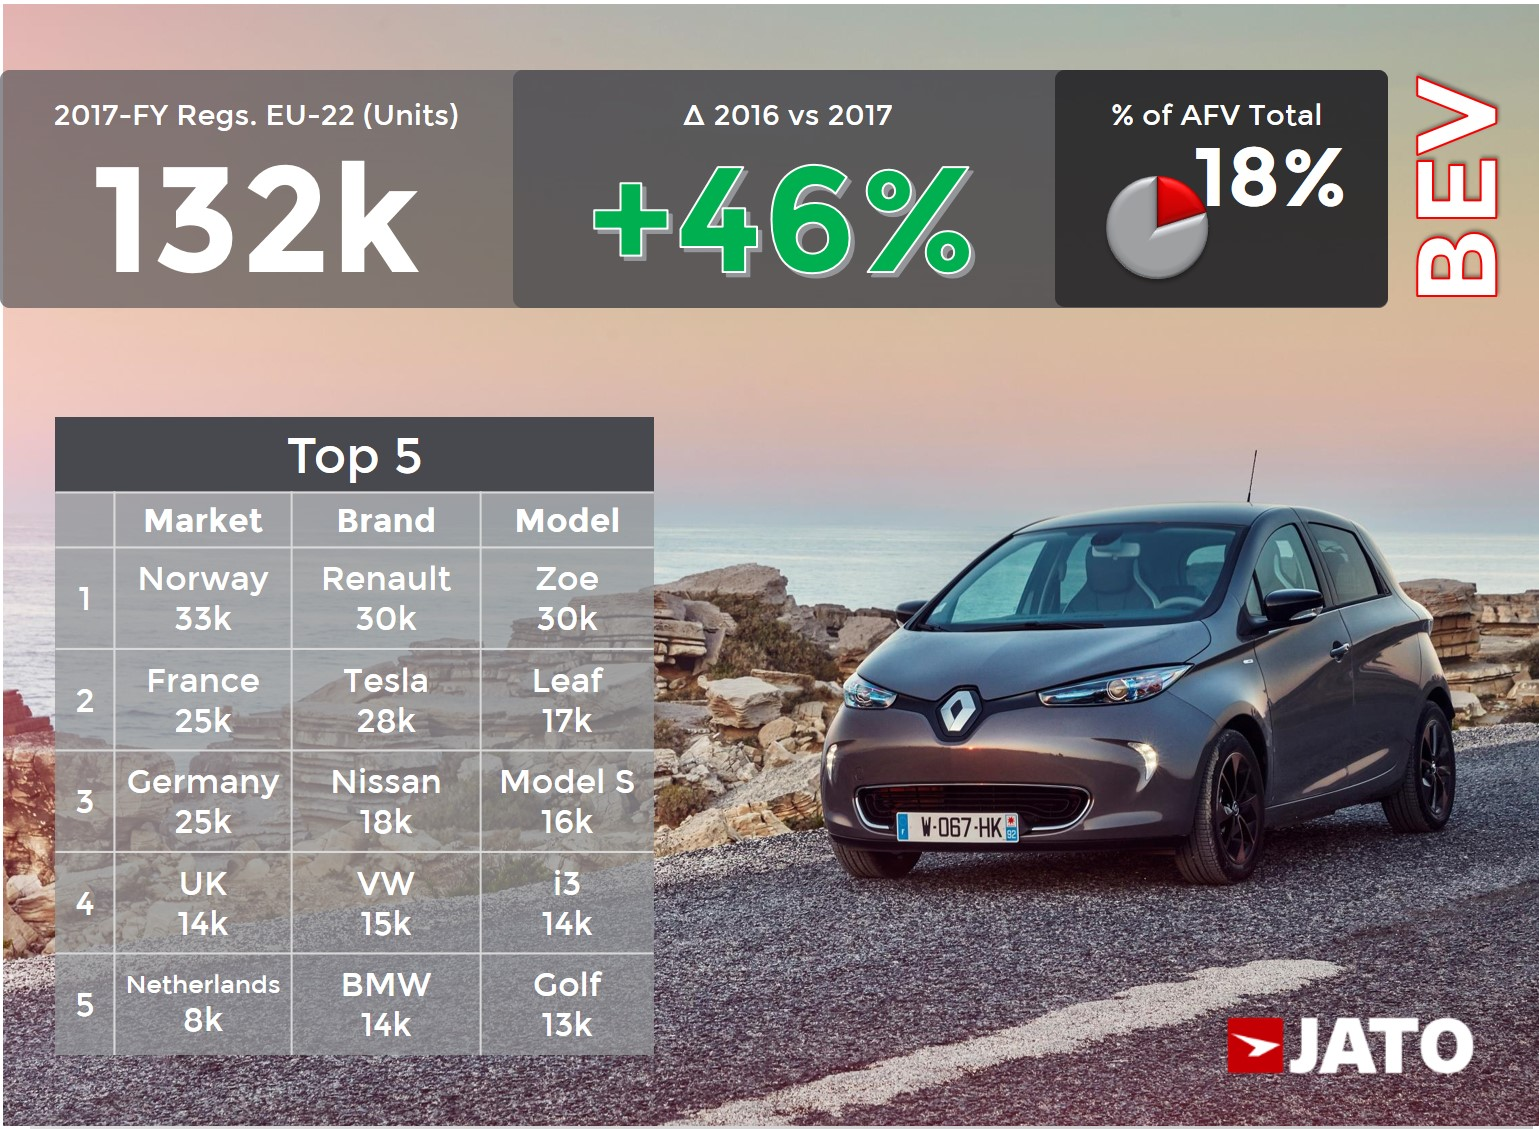 The Limited Line Up Stunts The Growth Of Afv Registrations In Europe Jato